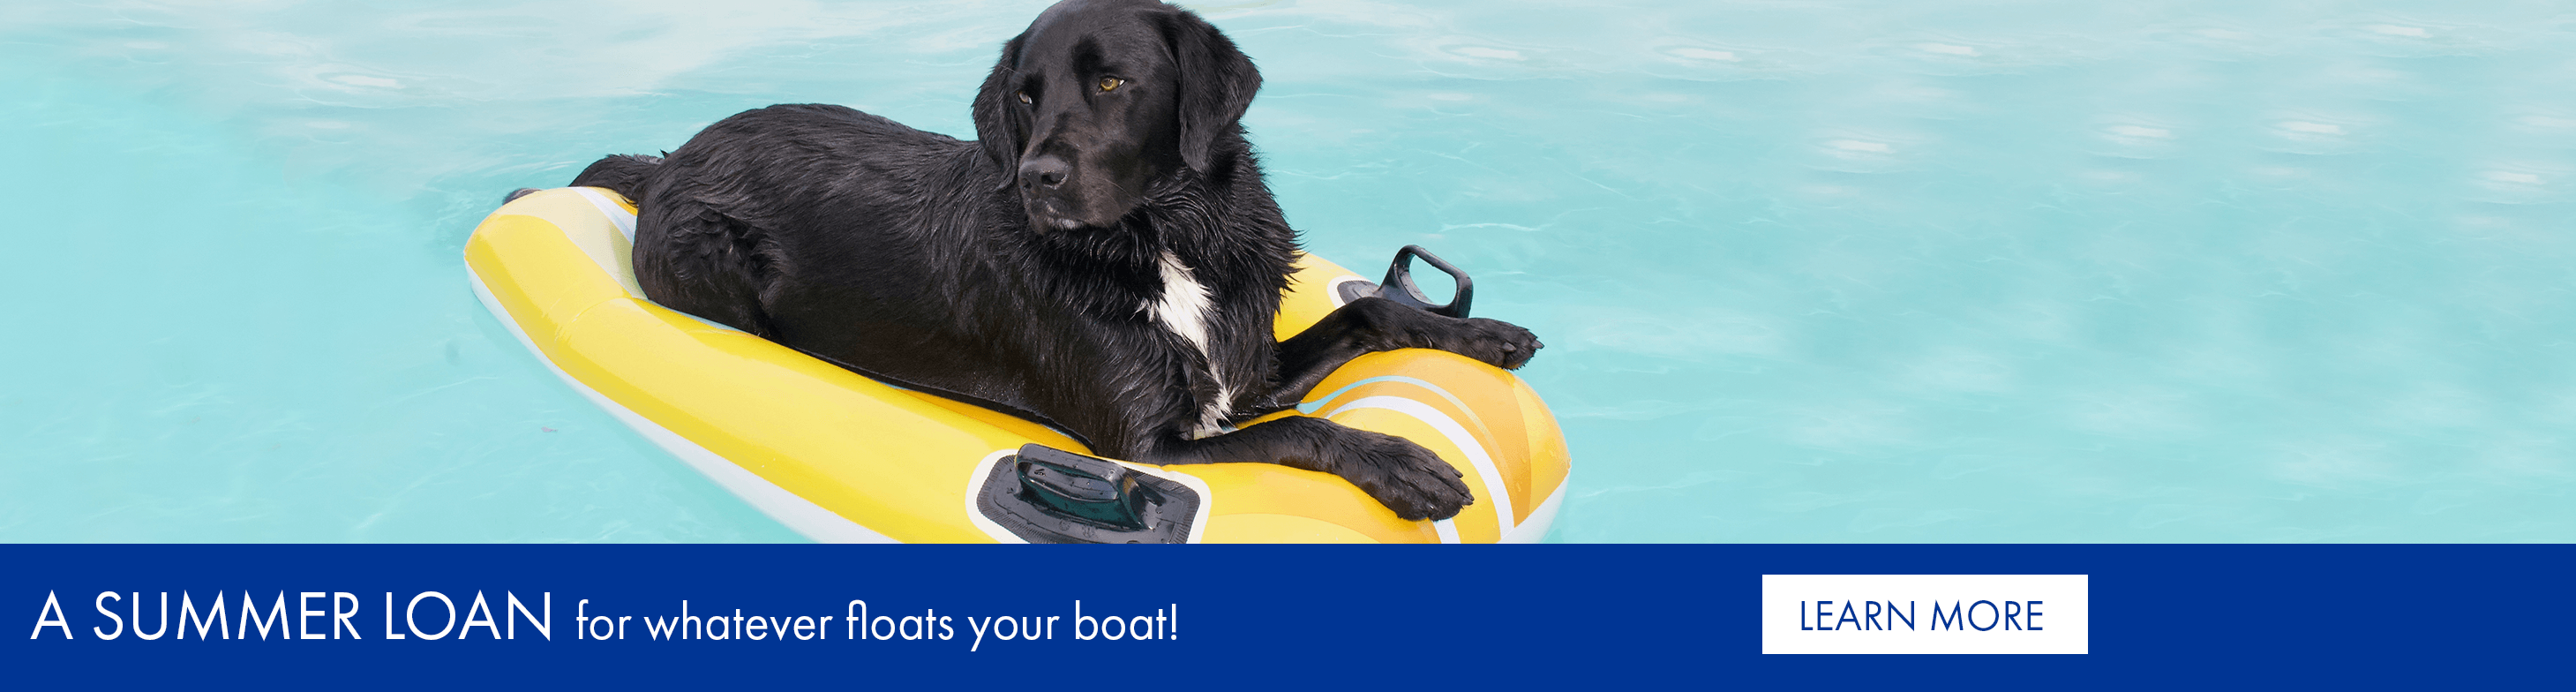 A summer loan for whatever floats your boat!